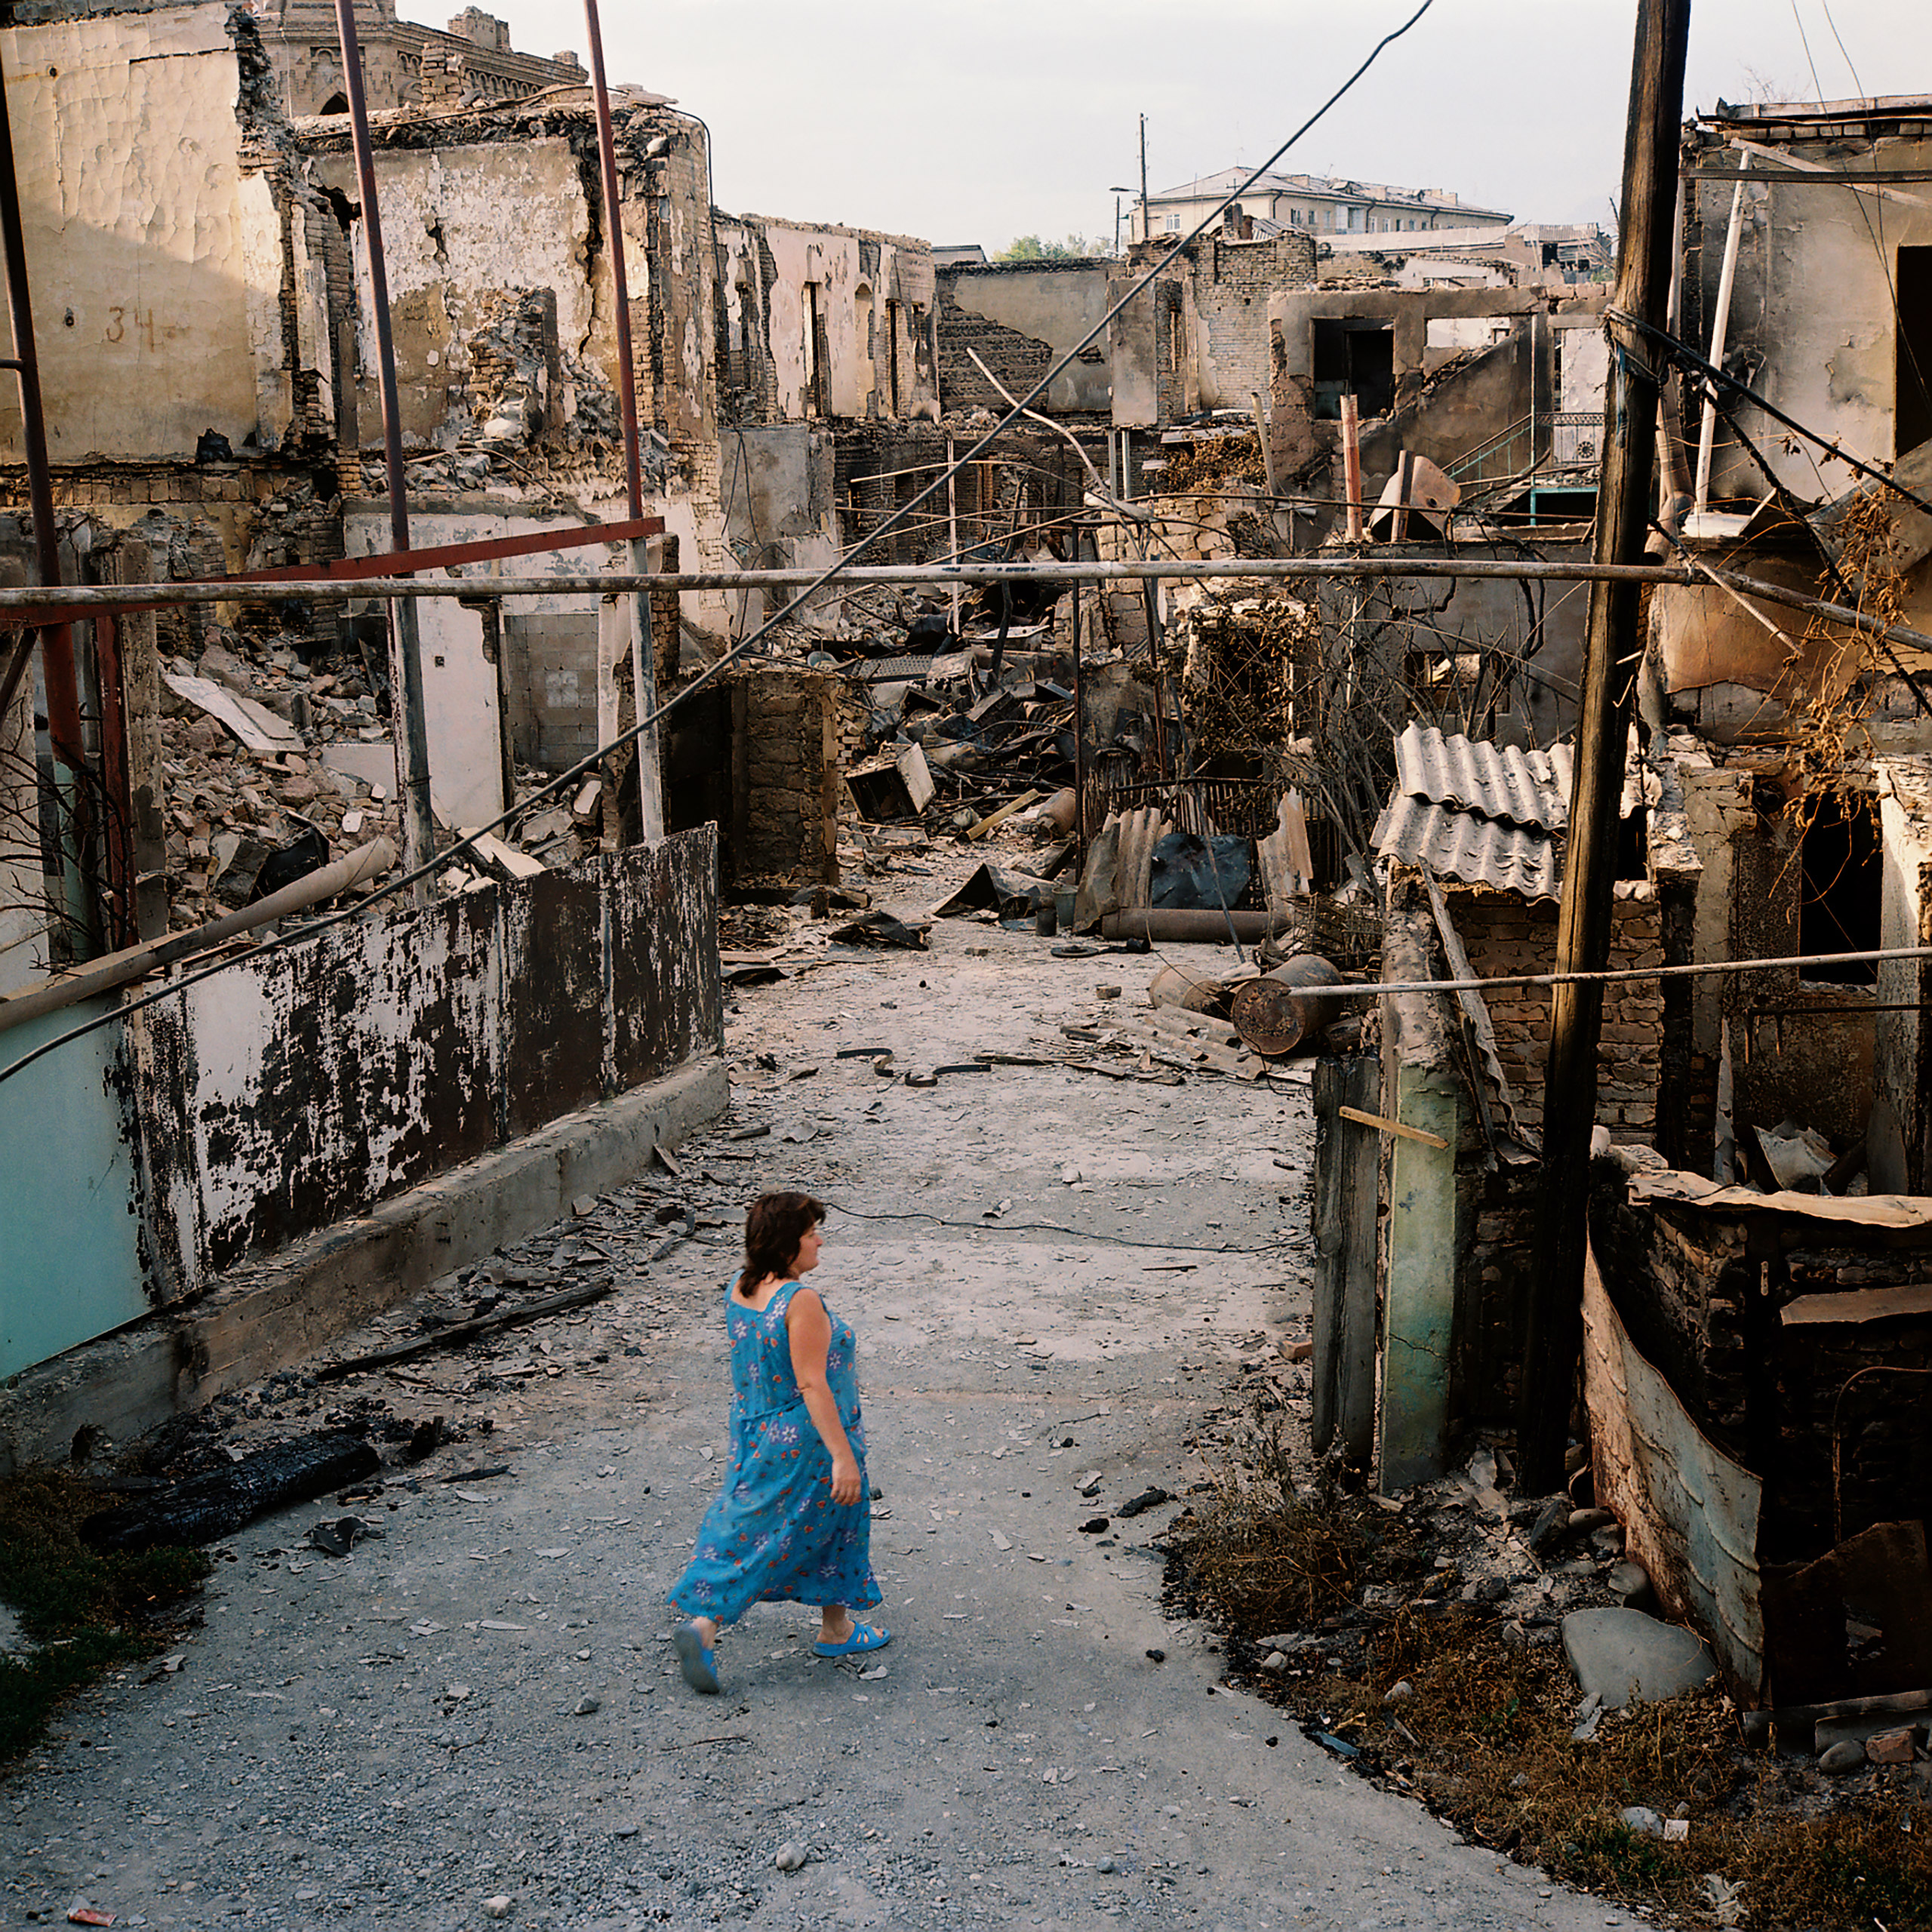 Bombed buildings on Telman street in the outskirts of Tshinvali, South Ossetia, August 16, 2008.